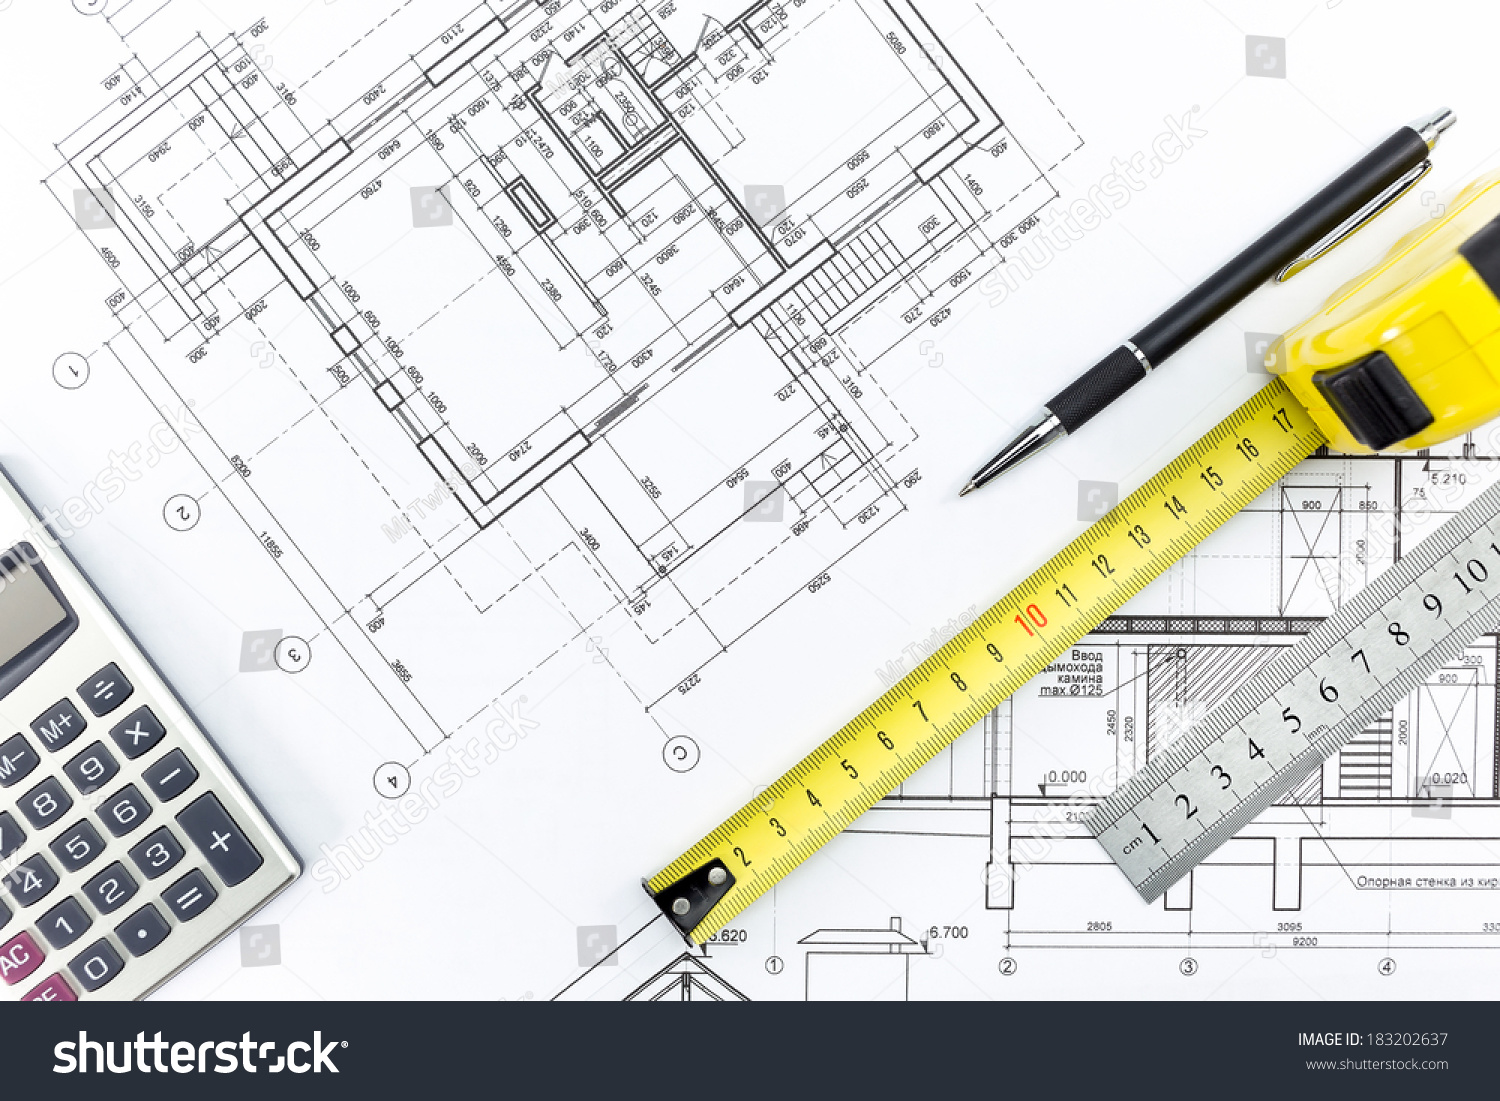 Engineering And Architecture Drawings Work Tools